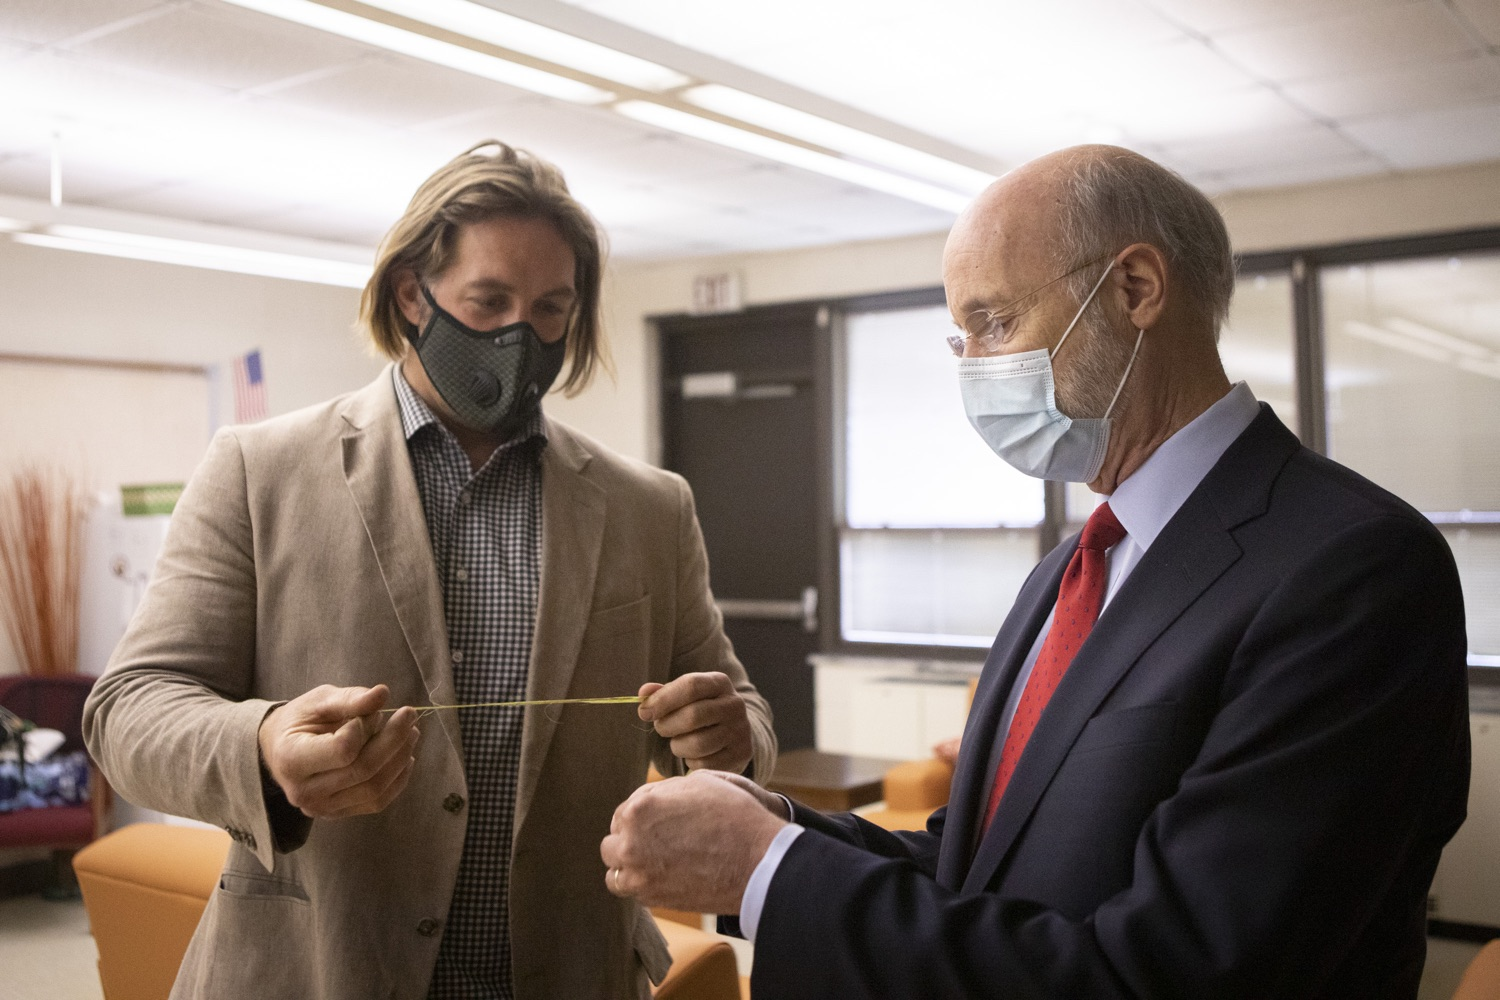 "<a href=""https://filesource.wostreaming.net/commonwealthofpa/photo/18310_gov_adult_use_cannabis_dz_004.jpg"" target=""_blank"">⇣ Download Photo<br></a>Eric Titus White, hemp farmer showing Governor Tom Wolf a cutting of industrial hemp.  Governor Tom Wolf visited The Mountain Center in Tobyhanna, Monroe County today to talk about the economic growth potential and restorative justice benefits of legalizing adult-use cannabis, something the state General Assembly has not yet done despite multiple requests from the governor and Lieutenant Governor John Fetterman to take up legislation this fall.  Tobyhanna, PA  October 13, 2020"